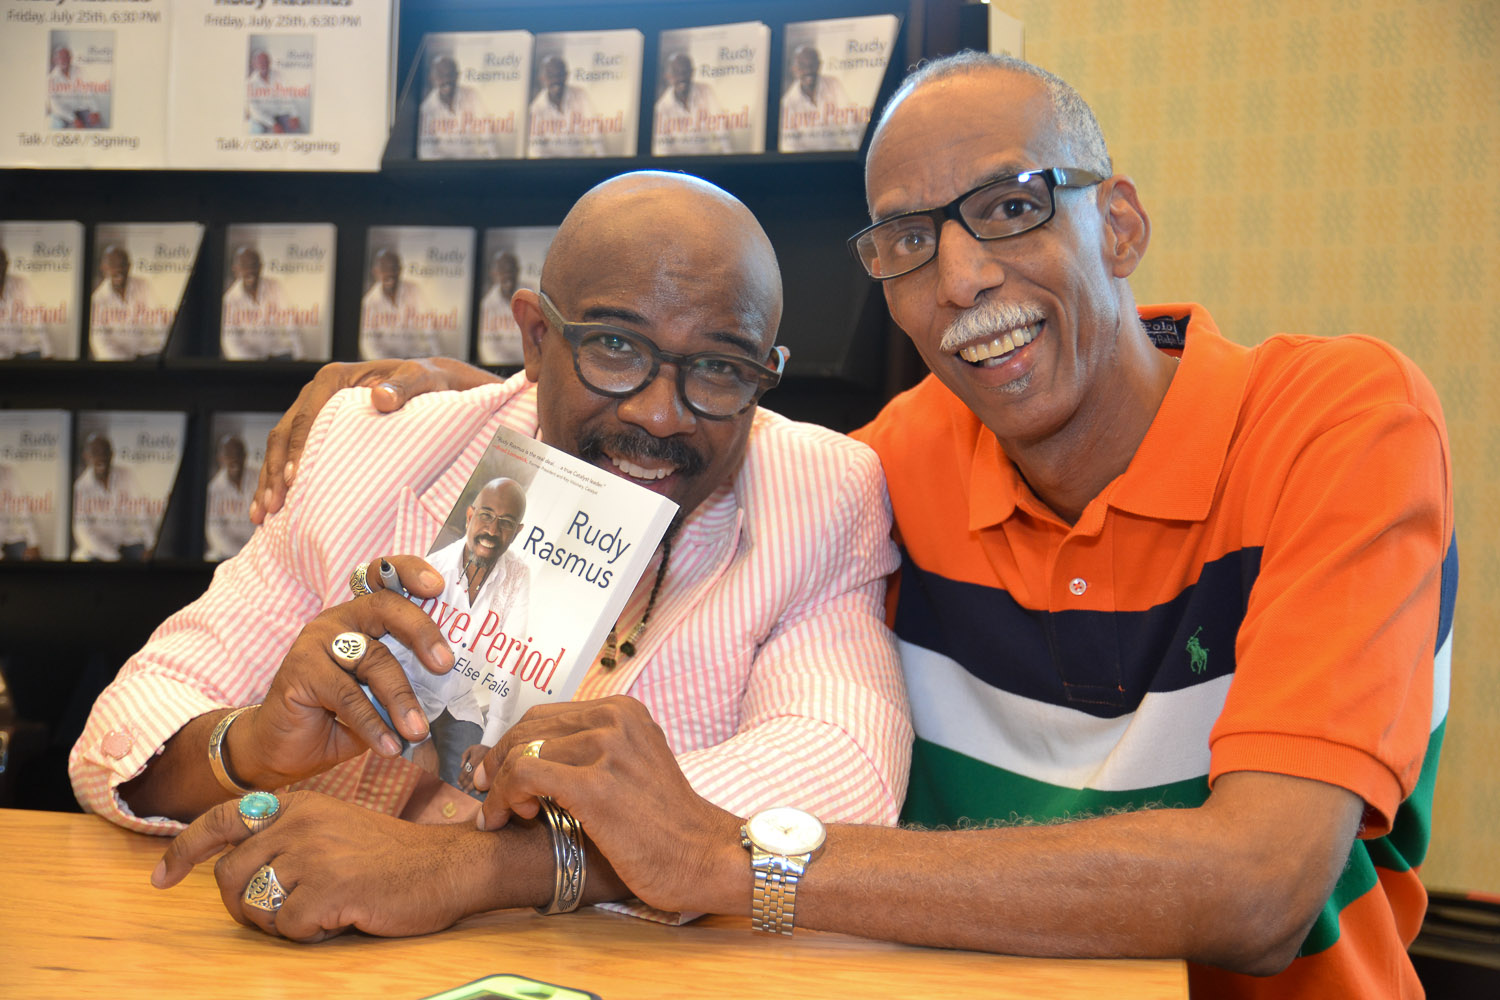 Paster Rudy book signing -0235.jpg